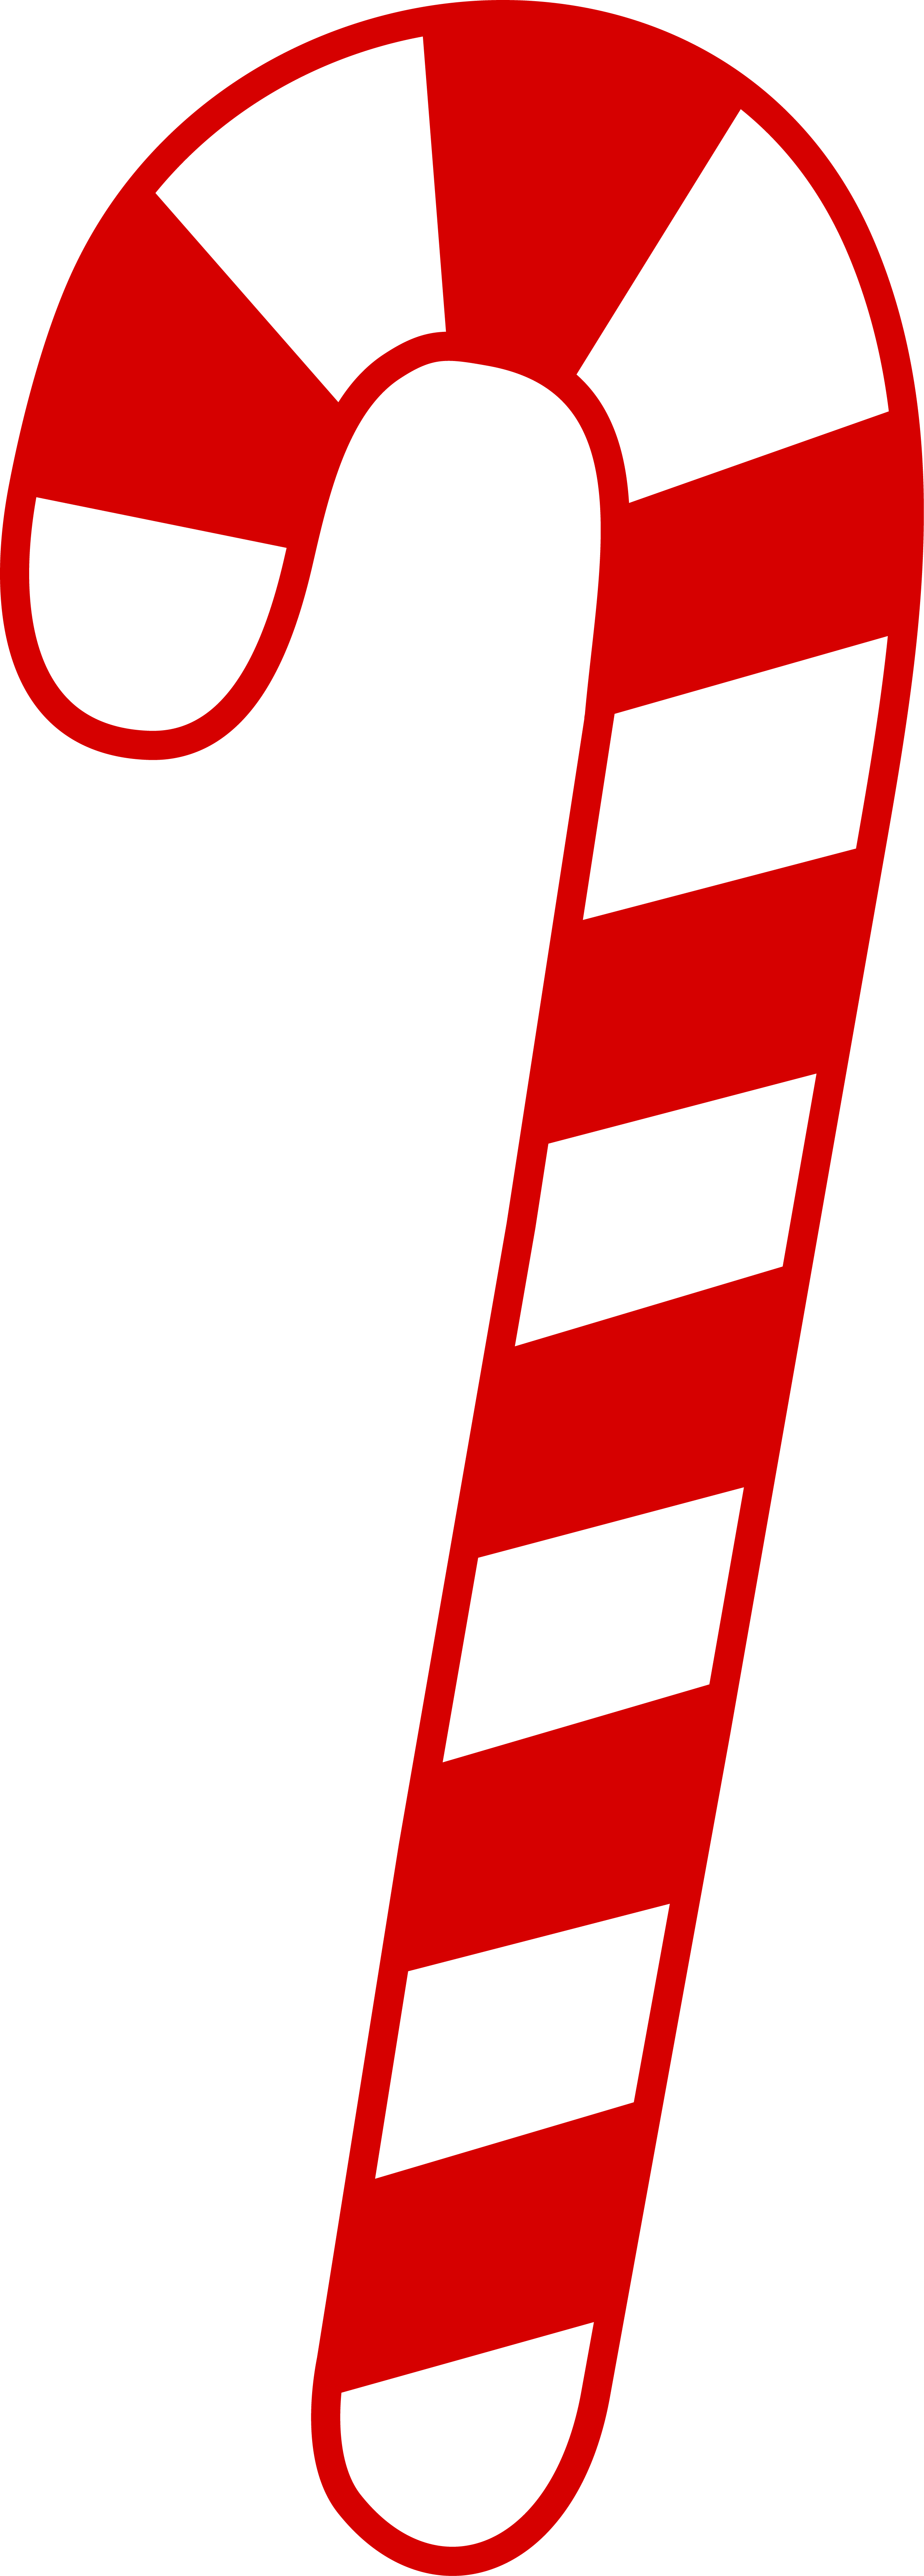 png library stock Cane clipart peppermint stick.  collection of high.